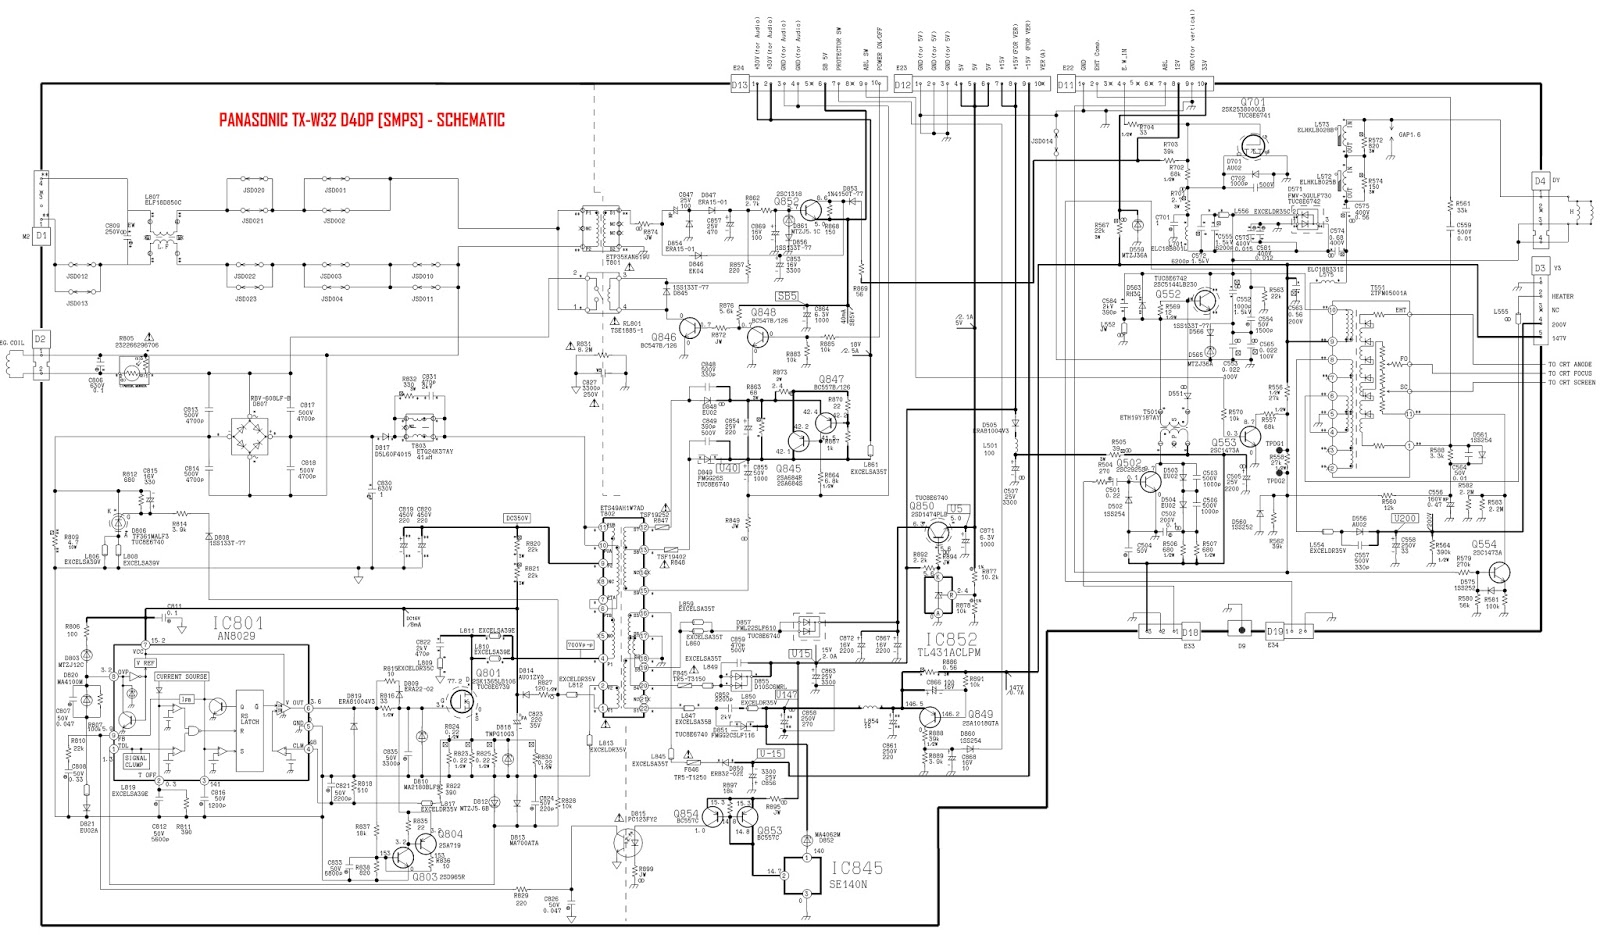 electro help: sharp pz-43mr2e - pz-50mr2e lcd tv- how to ... panasonic tv wiring diagram panasonic tv wiring diagrams